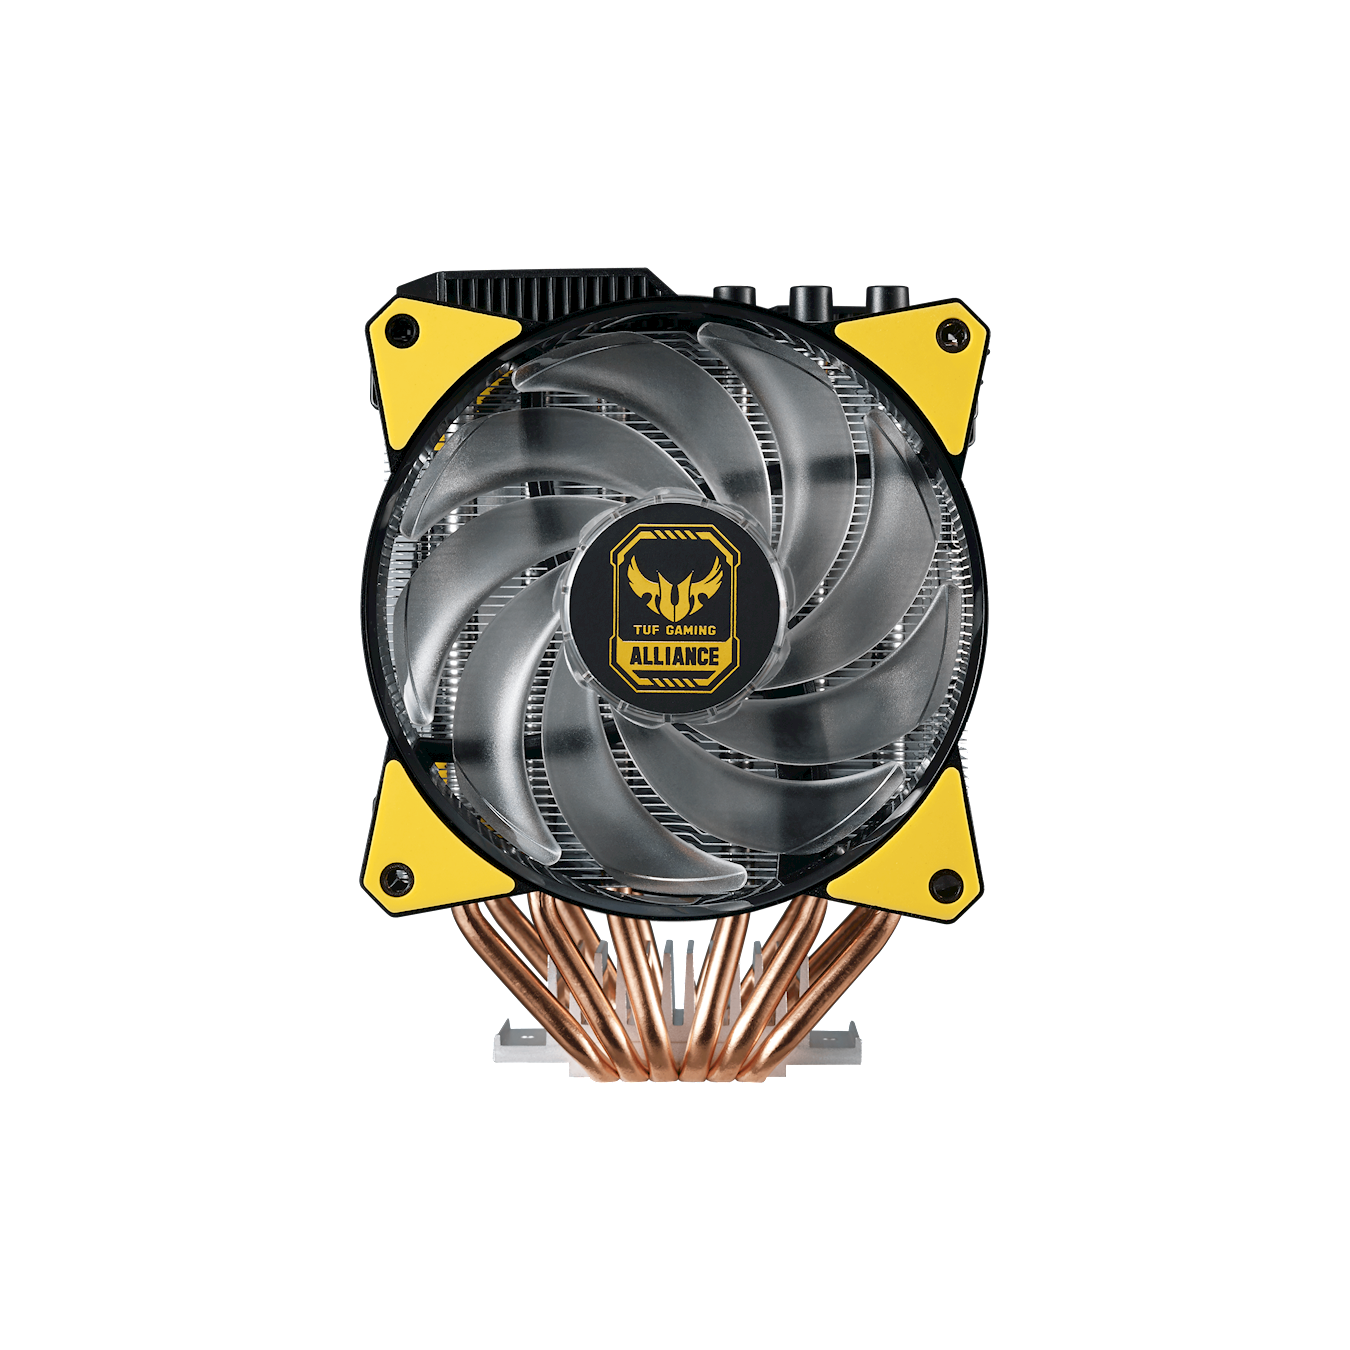 MasterAir MA620P TUF - is built for extreme cooling performance in collaboration with ASUS TUF series motherboards.